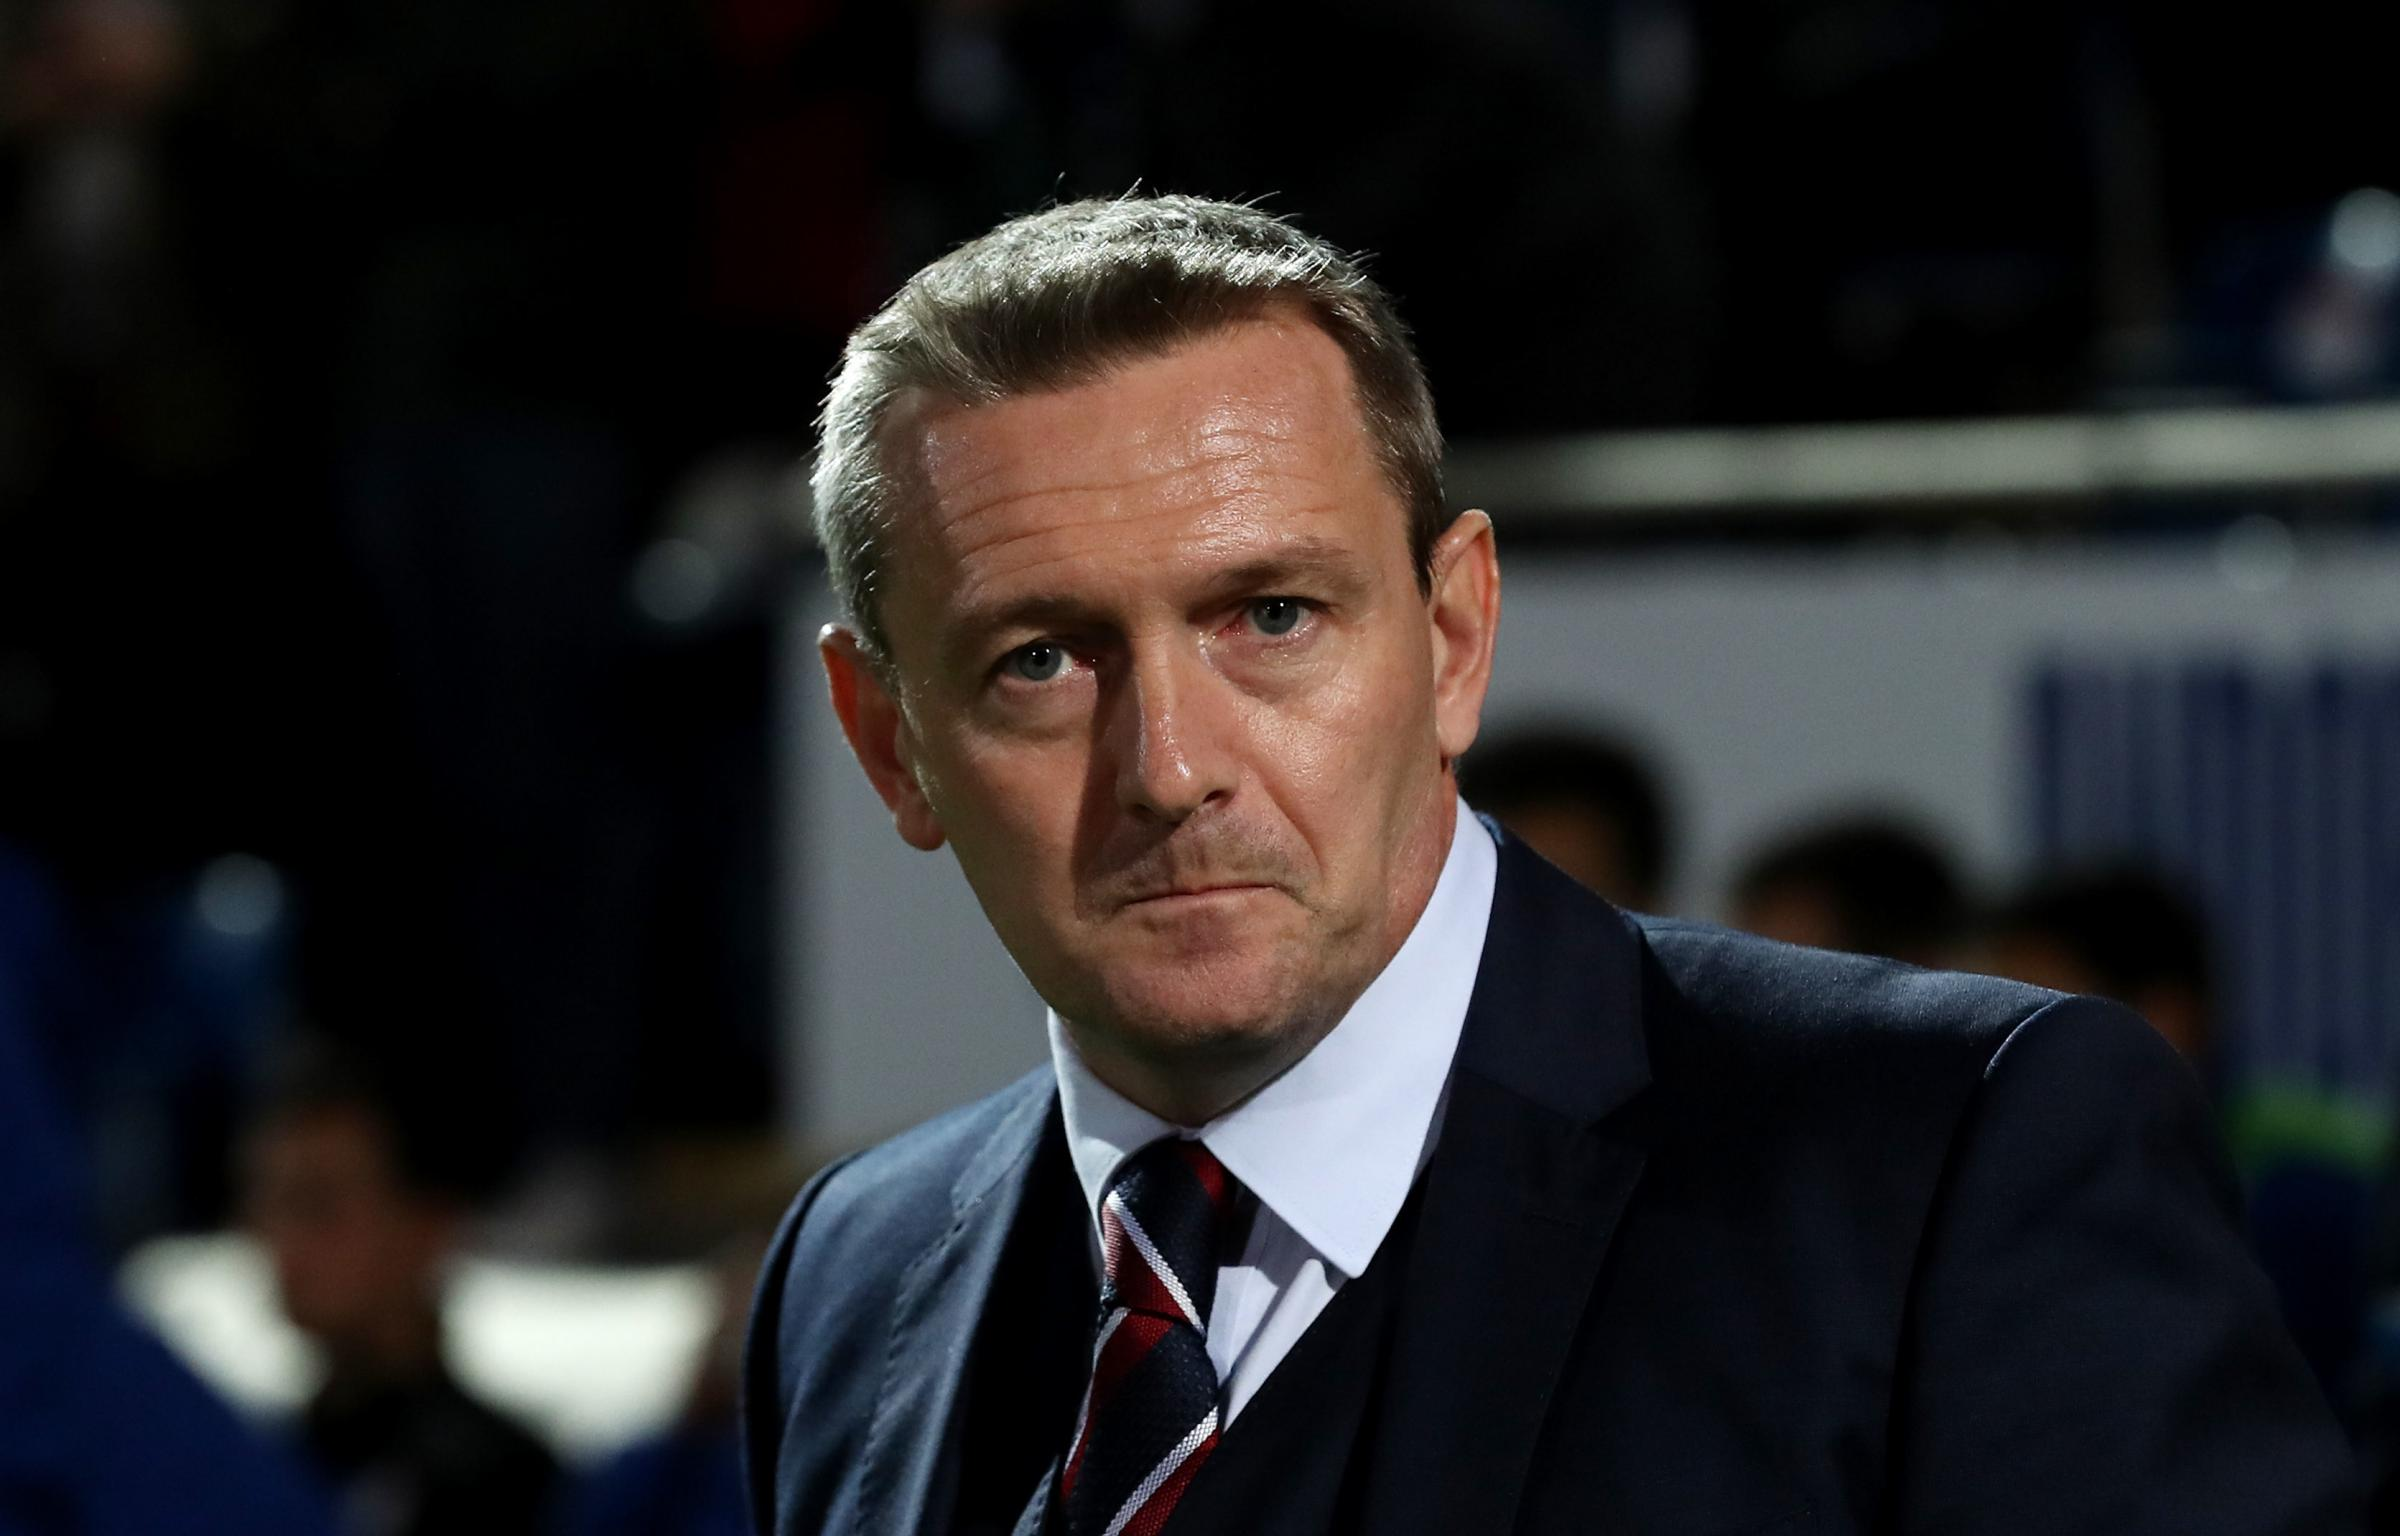 England U21 head coach Aidy Boothroyd during the UEFA European Under-21 Championship Qualifying, Group 4 match at the Proact Stadium, Chesterfield. PRESS ASSOCIATION Photo. Picture date: Thursday October 11, 2018. See PA story SOCCER England U21. Photo cr